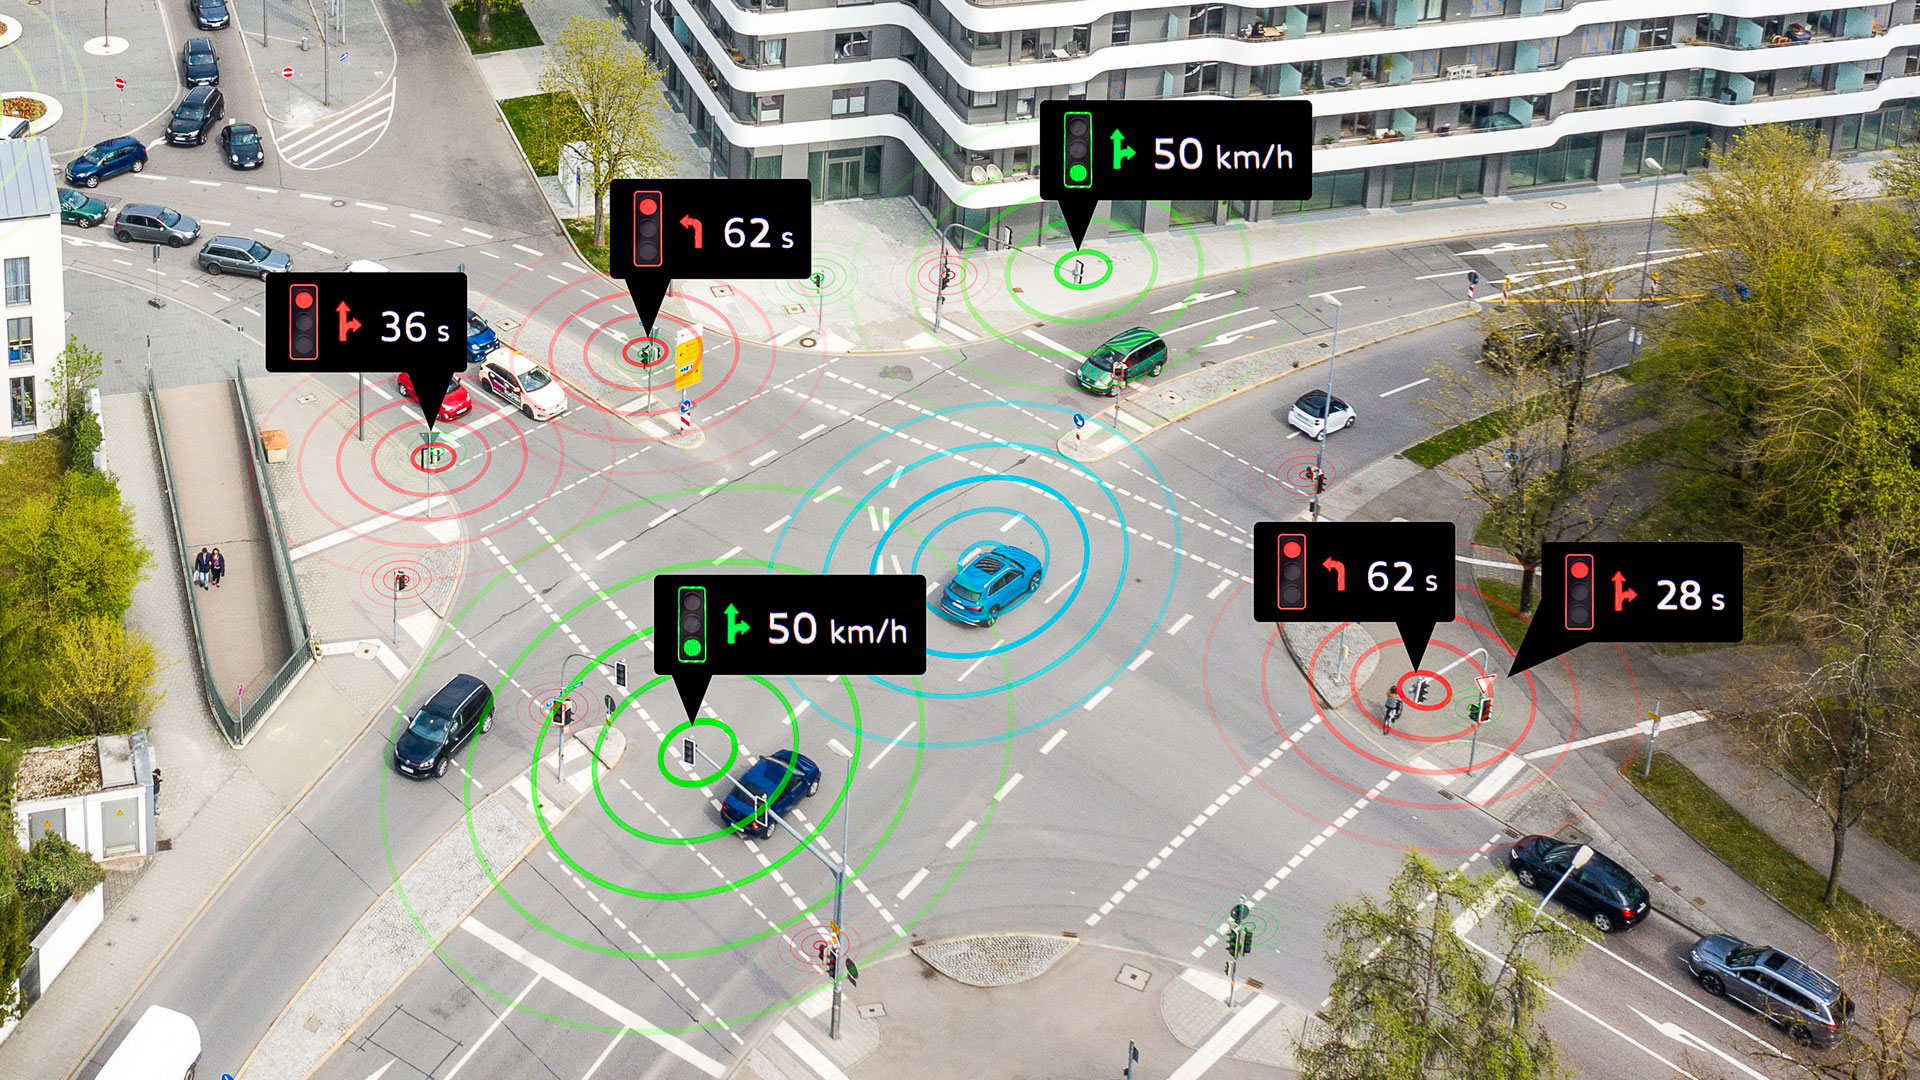 Smart city Ingolstadt: intelligent traffic management helps the driver to get through traffic as efficiently as possible.